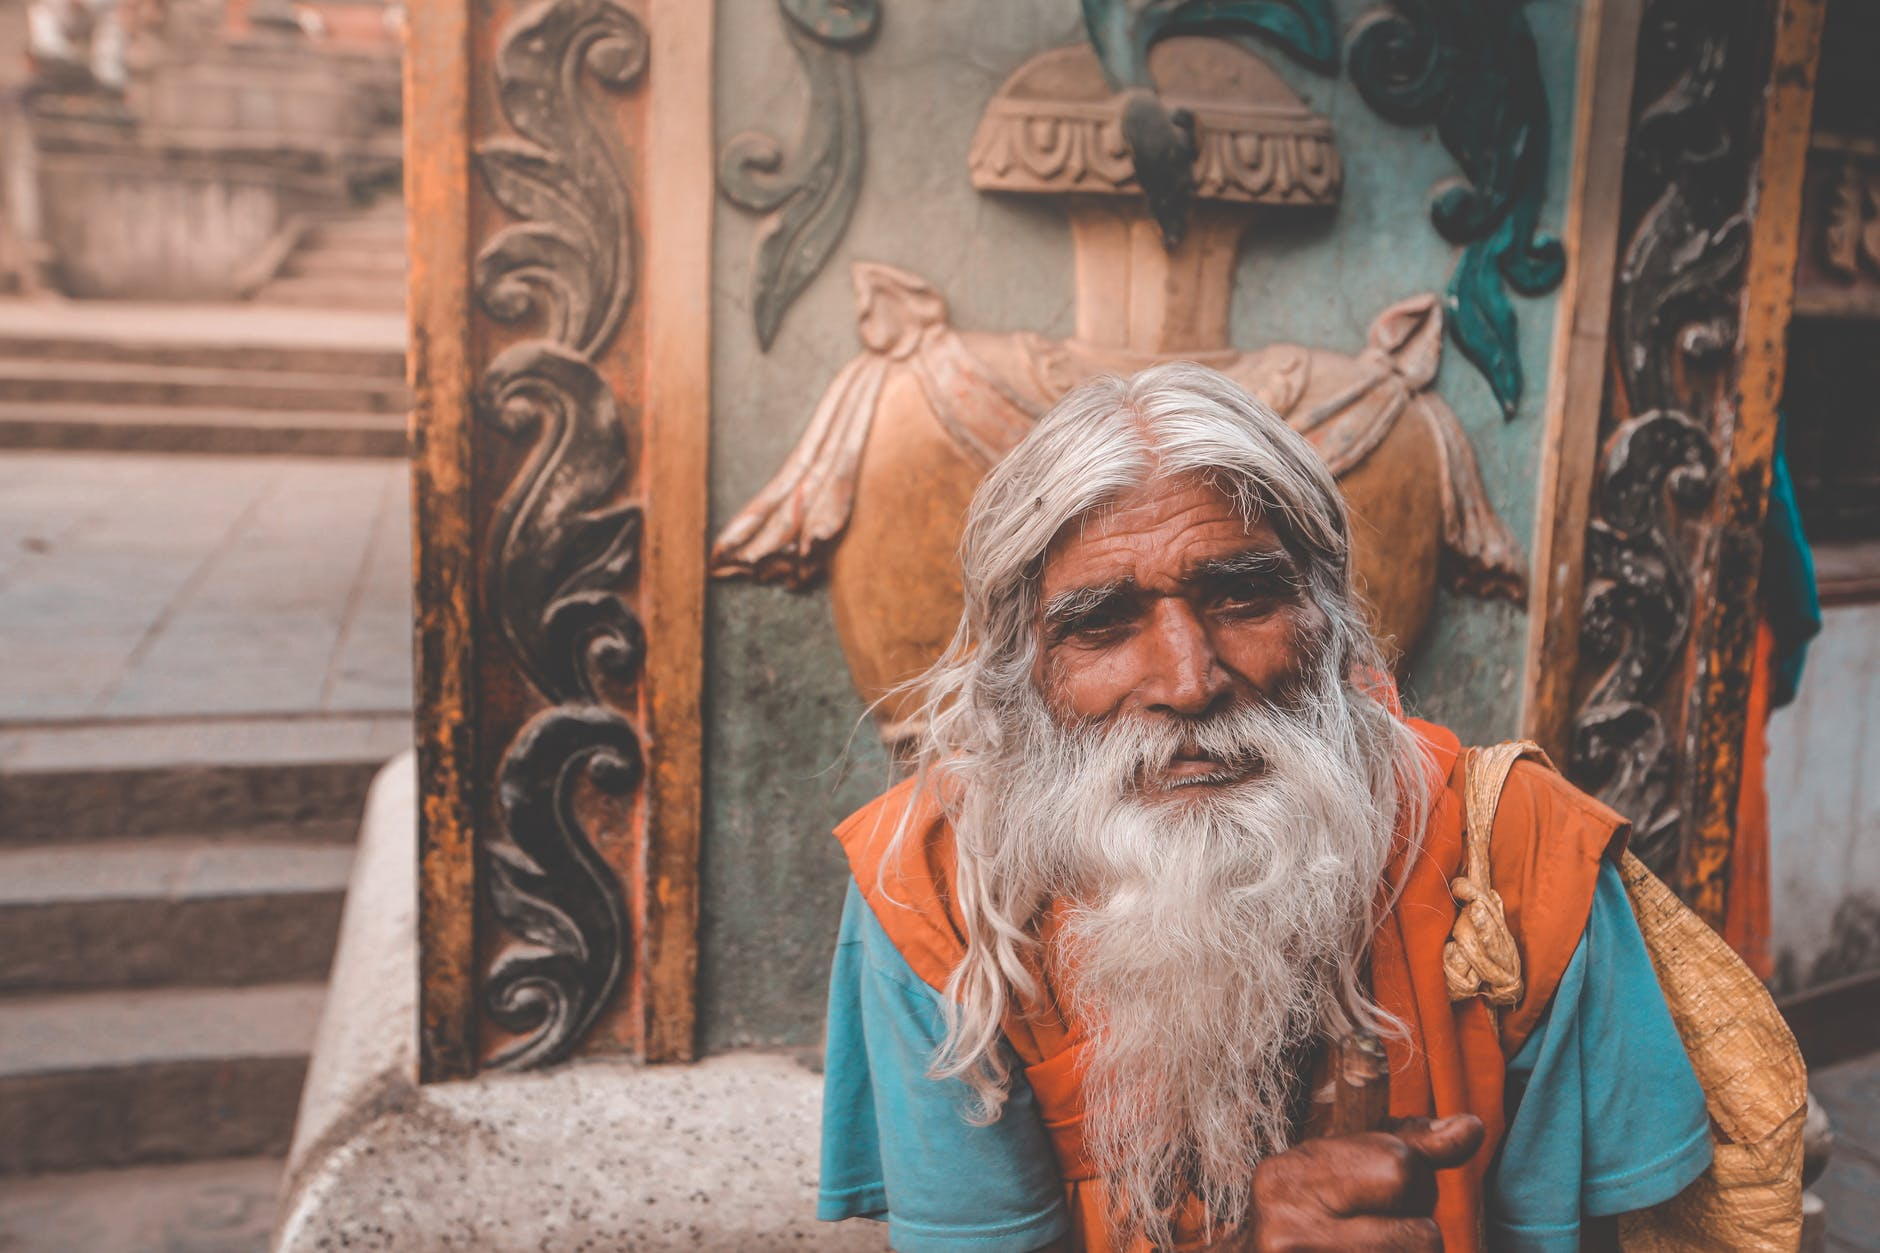 elderly hindu man with gray beard in town; stock character; old wise person